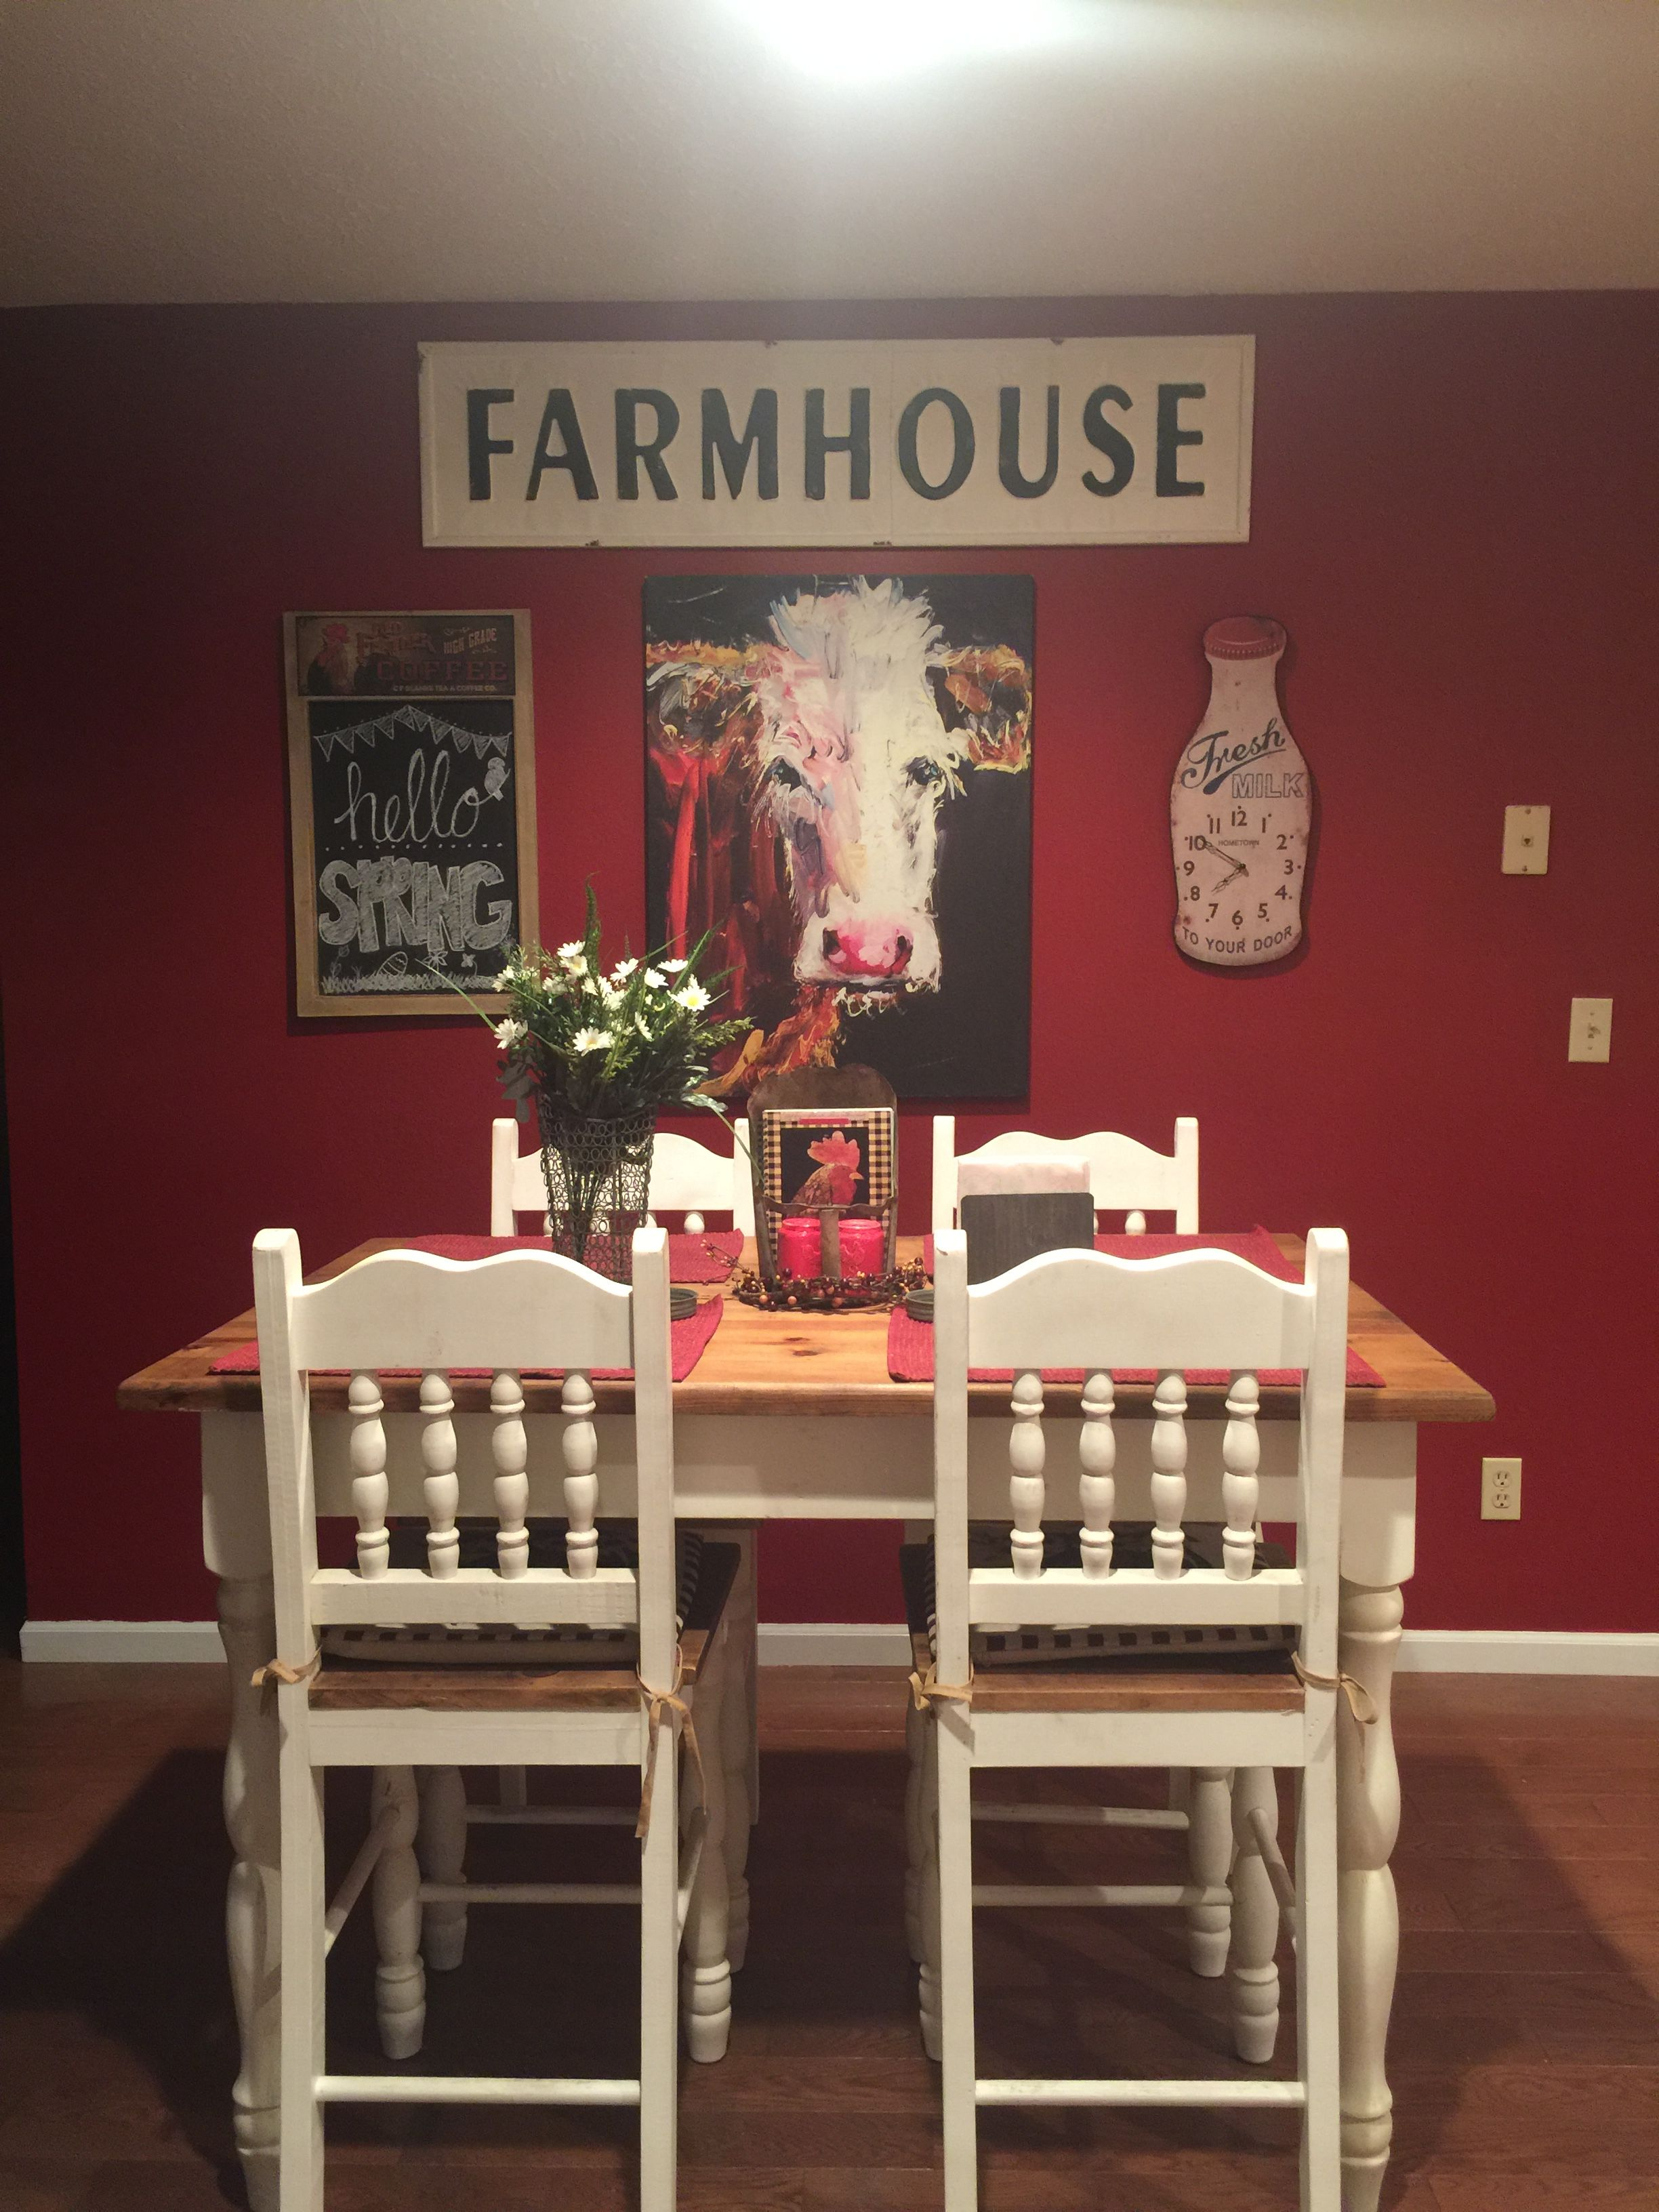 Kitchen Farmhouse Cows DreamHomeHomeDecor Home